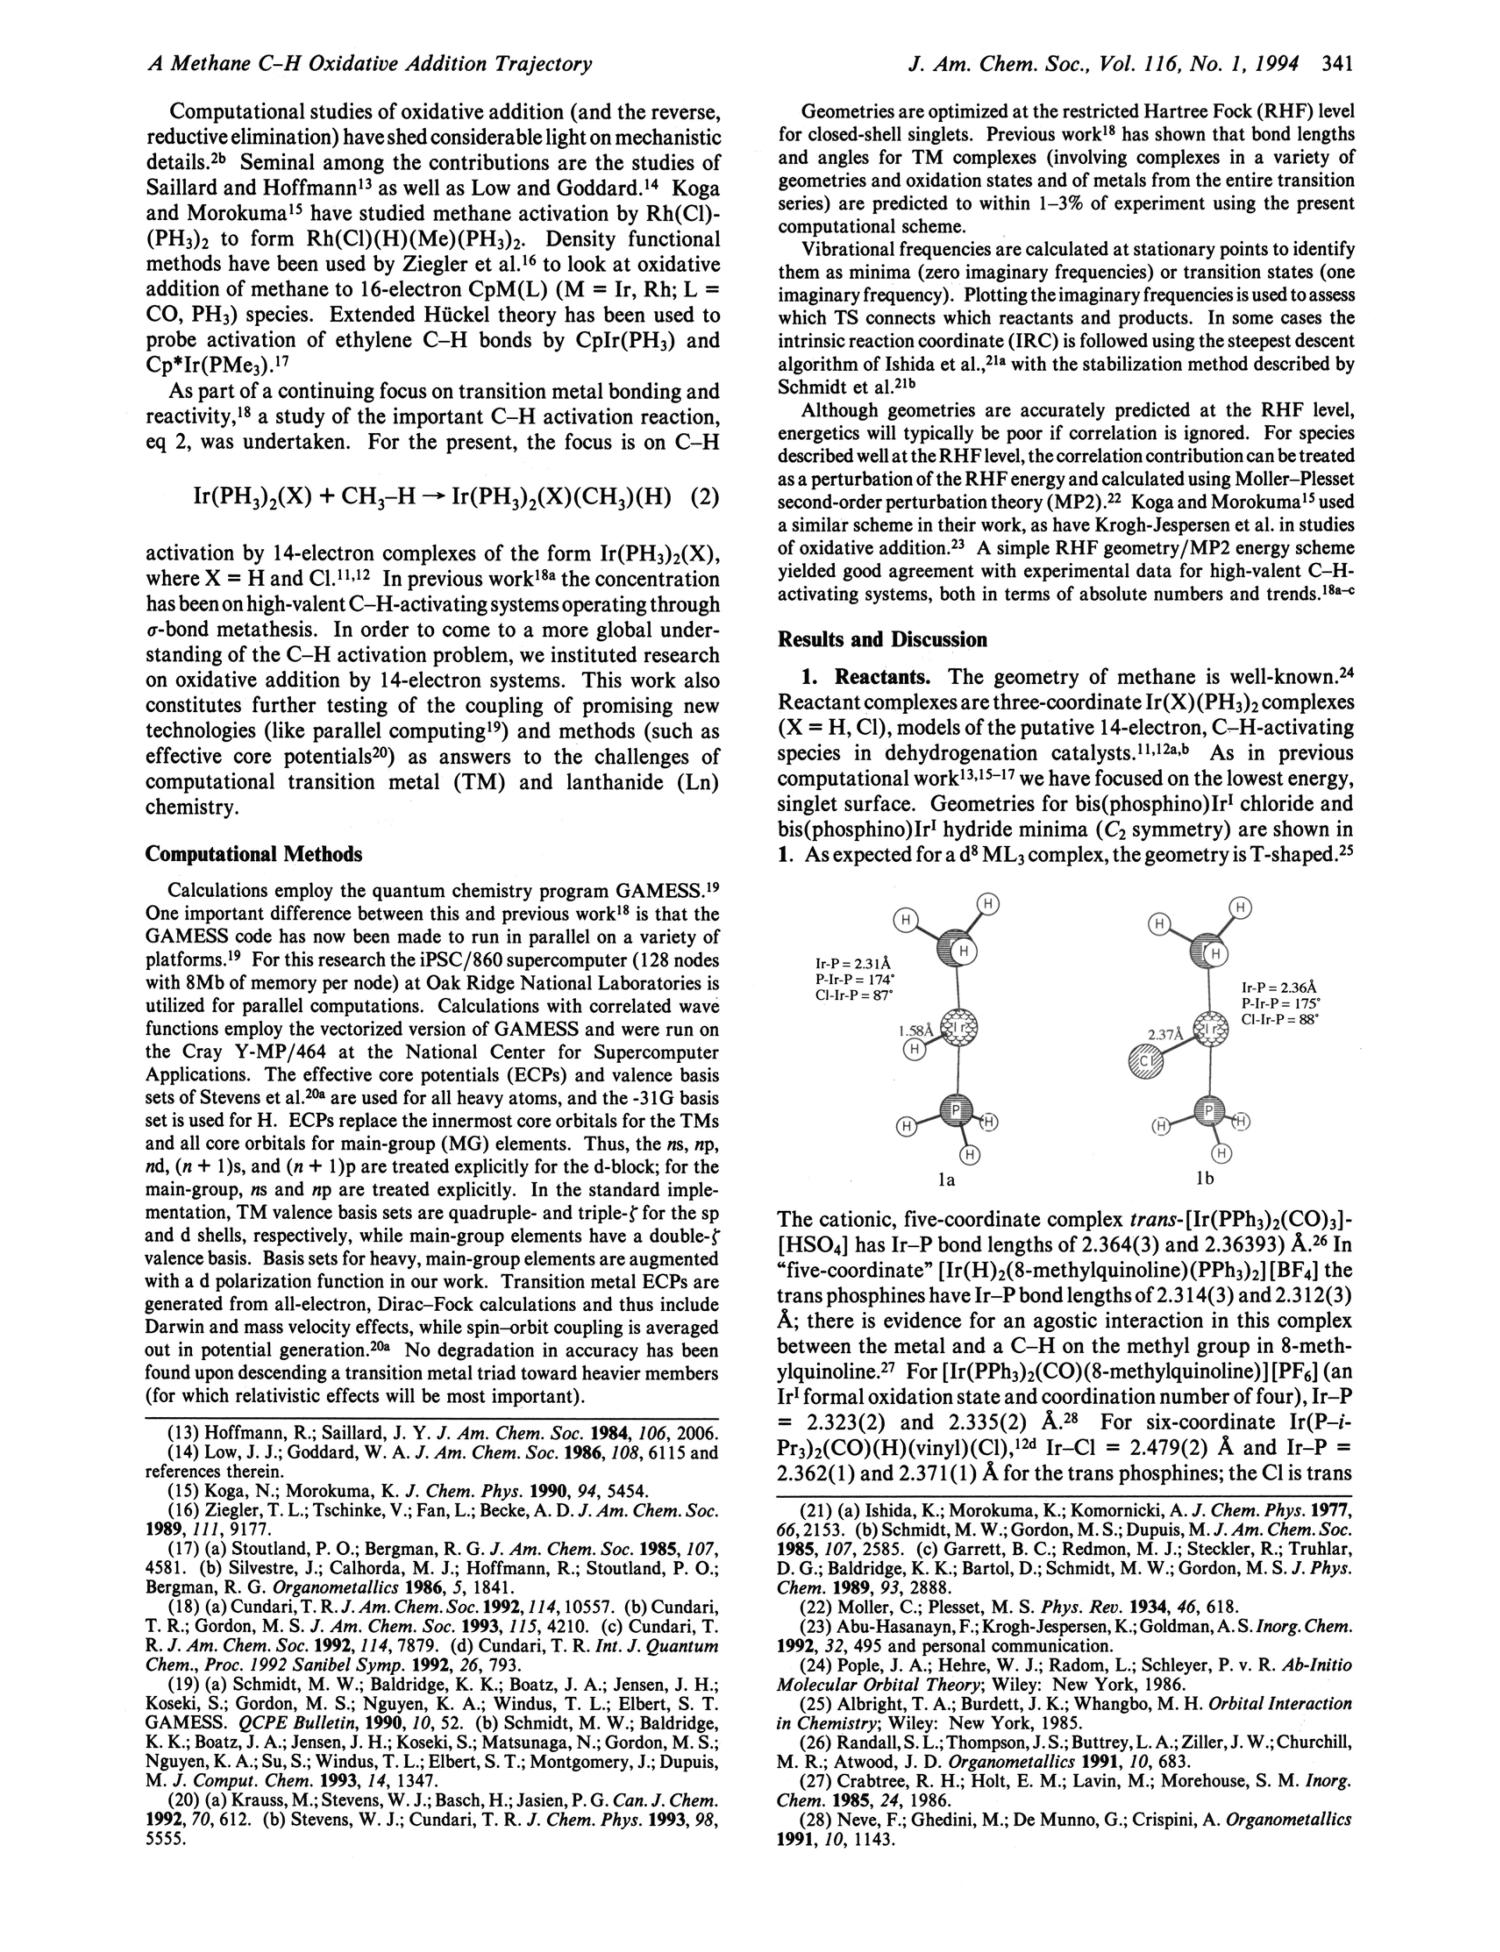 Calculation of a Methane C-H Oxidative Addition Trajectory: Comparison to Experiment and Methane Activation by High-Valent Complexes                                                                                                      341